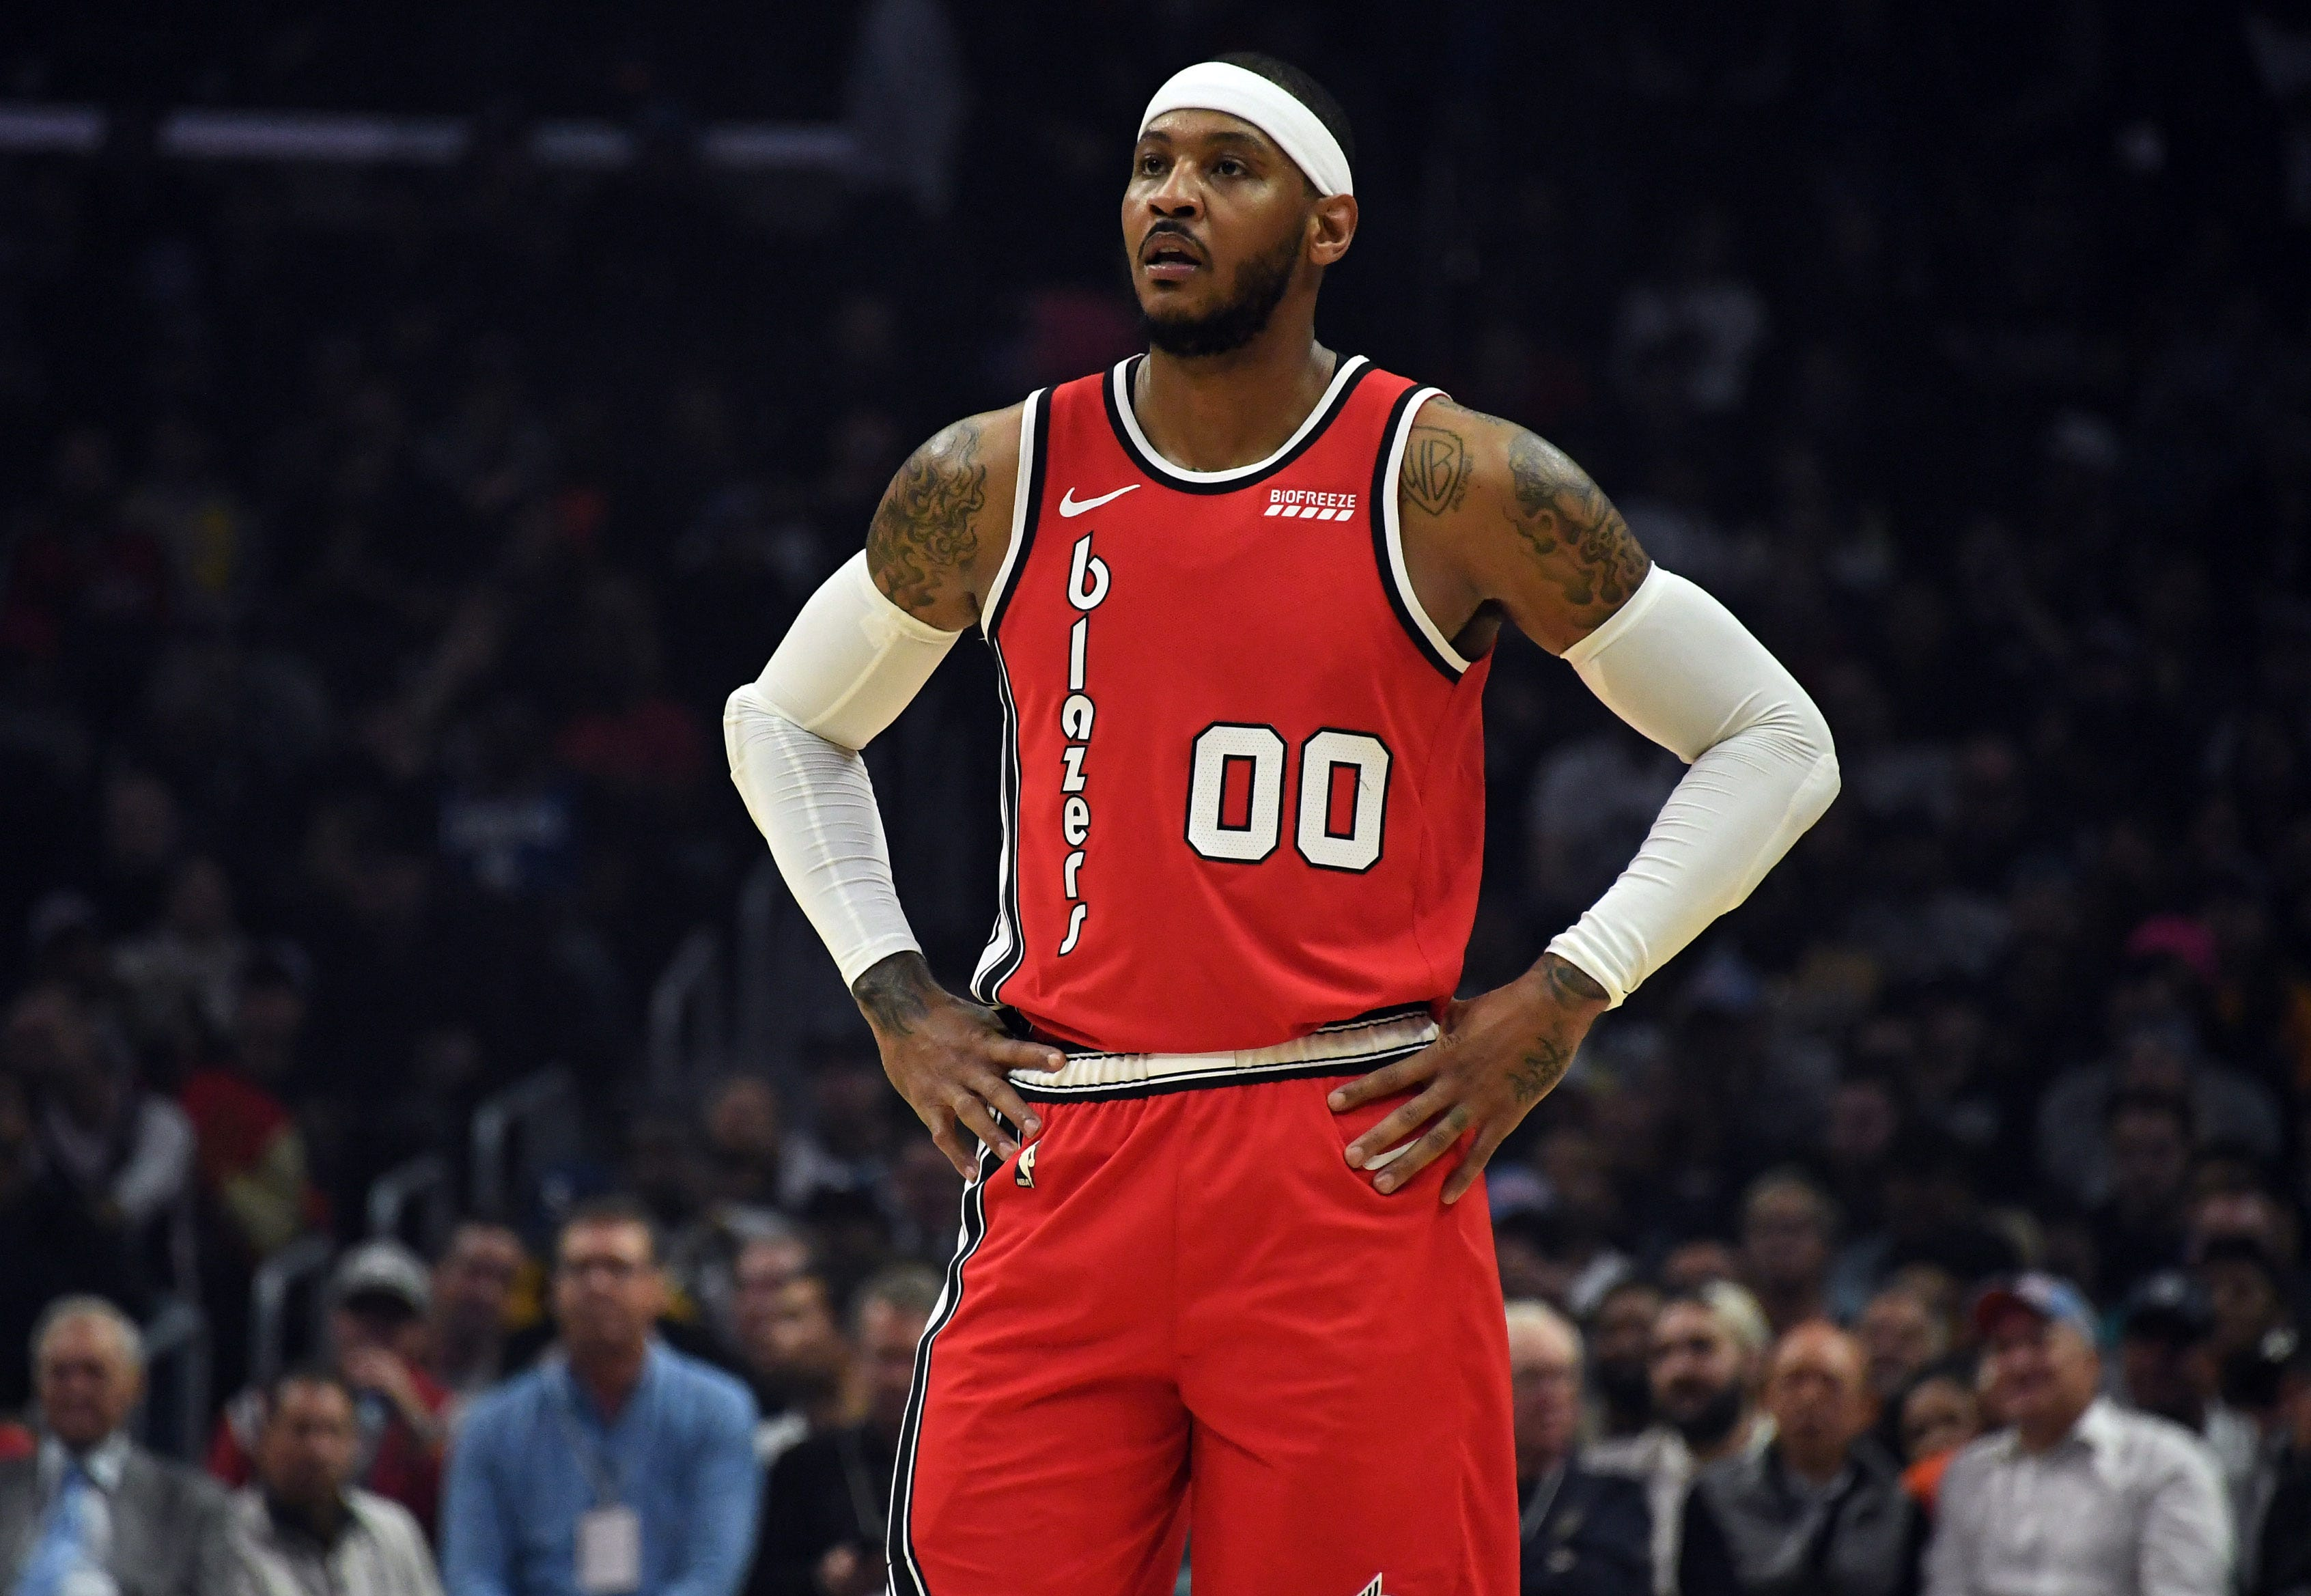 Opinion: Has Carmelo Anthony found the right fit with Portland Trail Blazers?